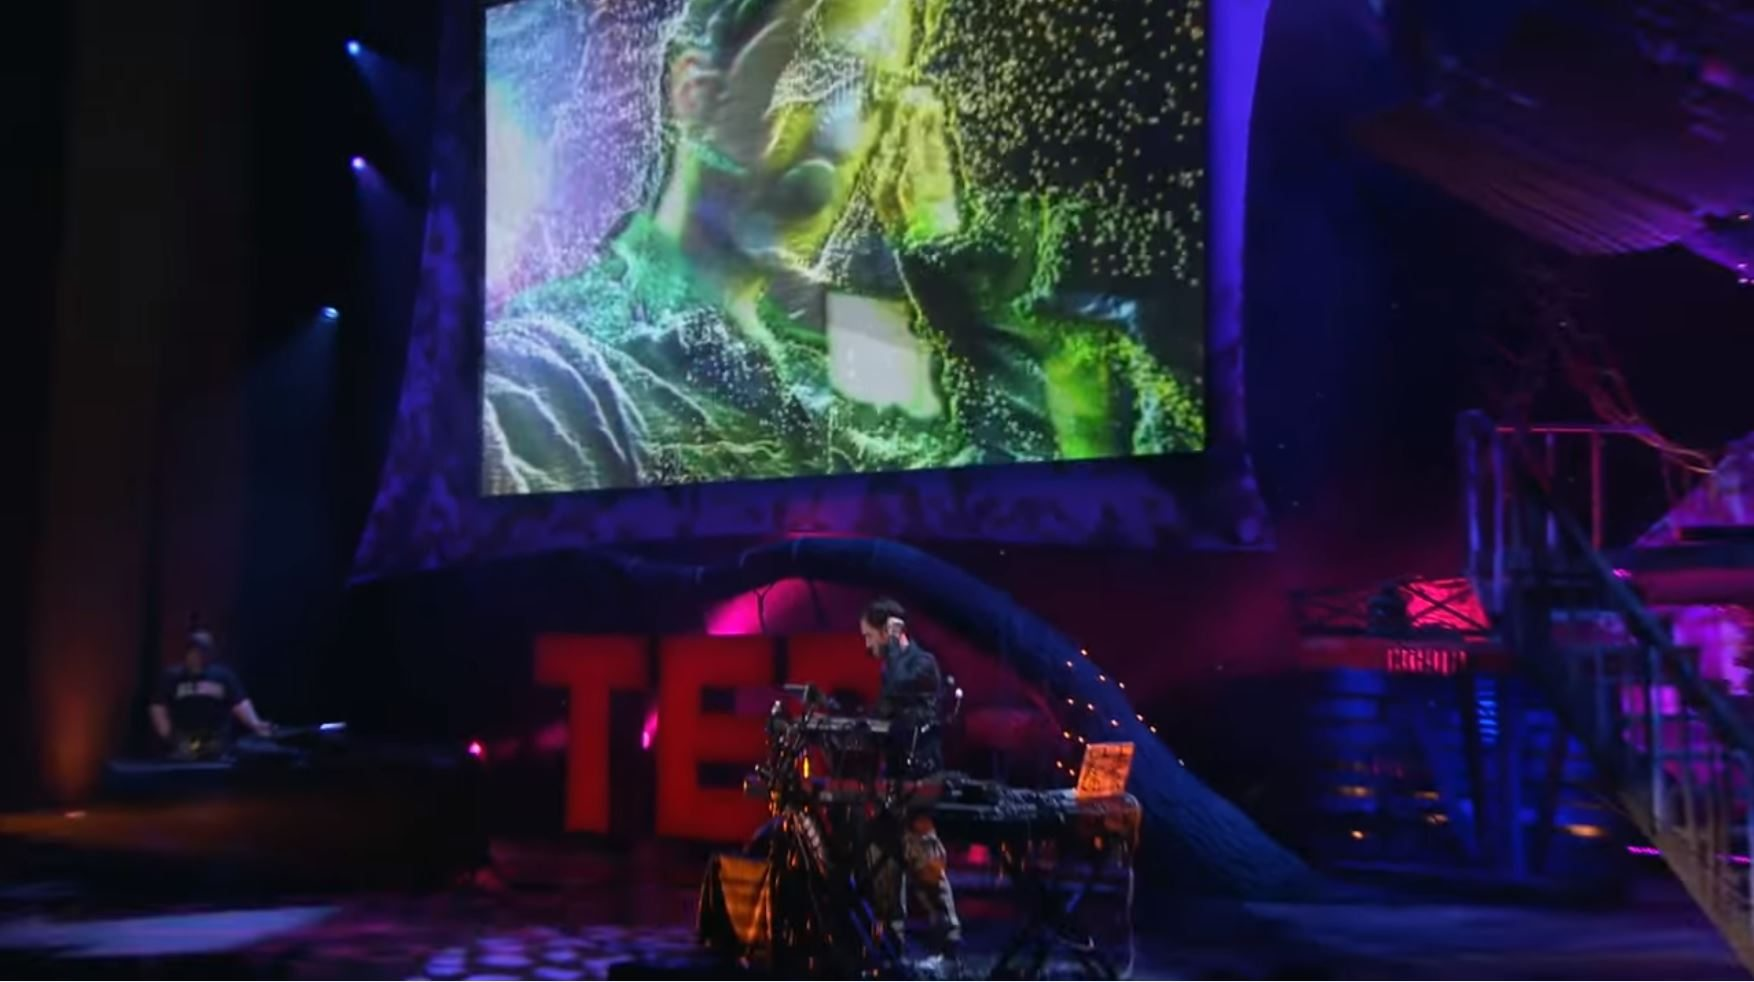 Image: Darren Foreman on the TED stage, showing off the human voice remixed